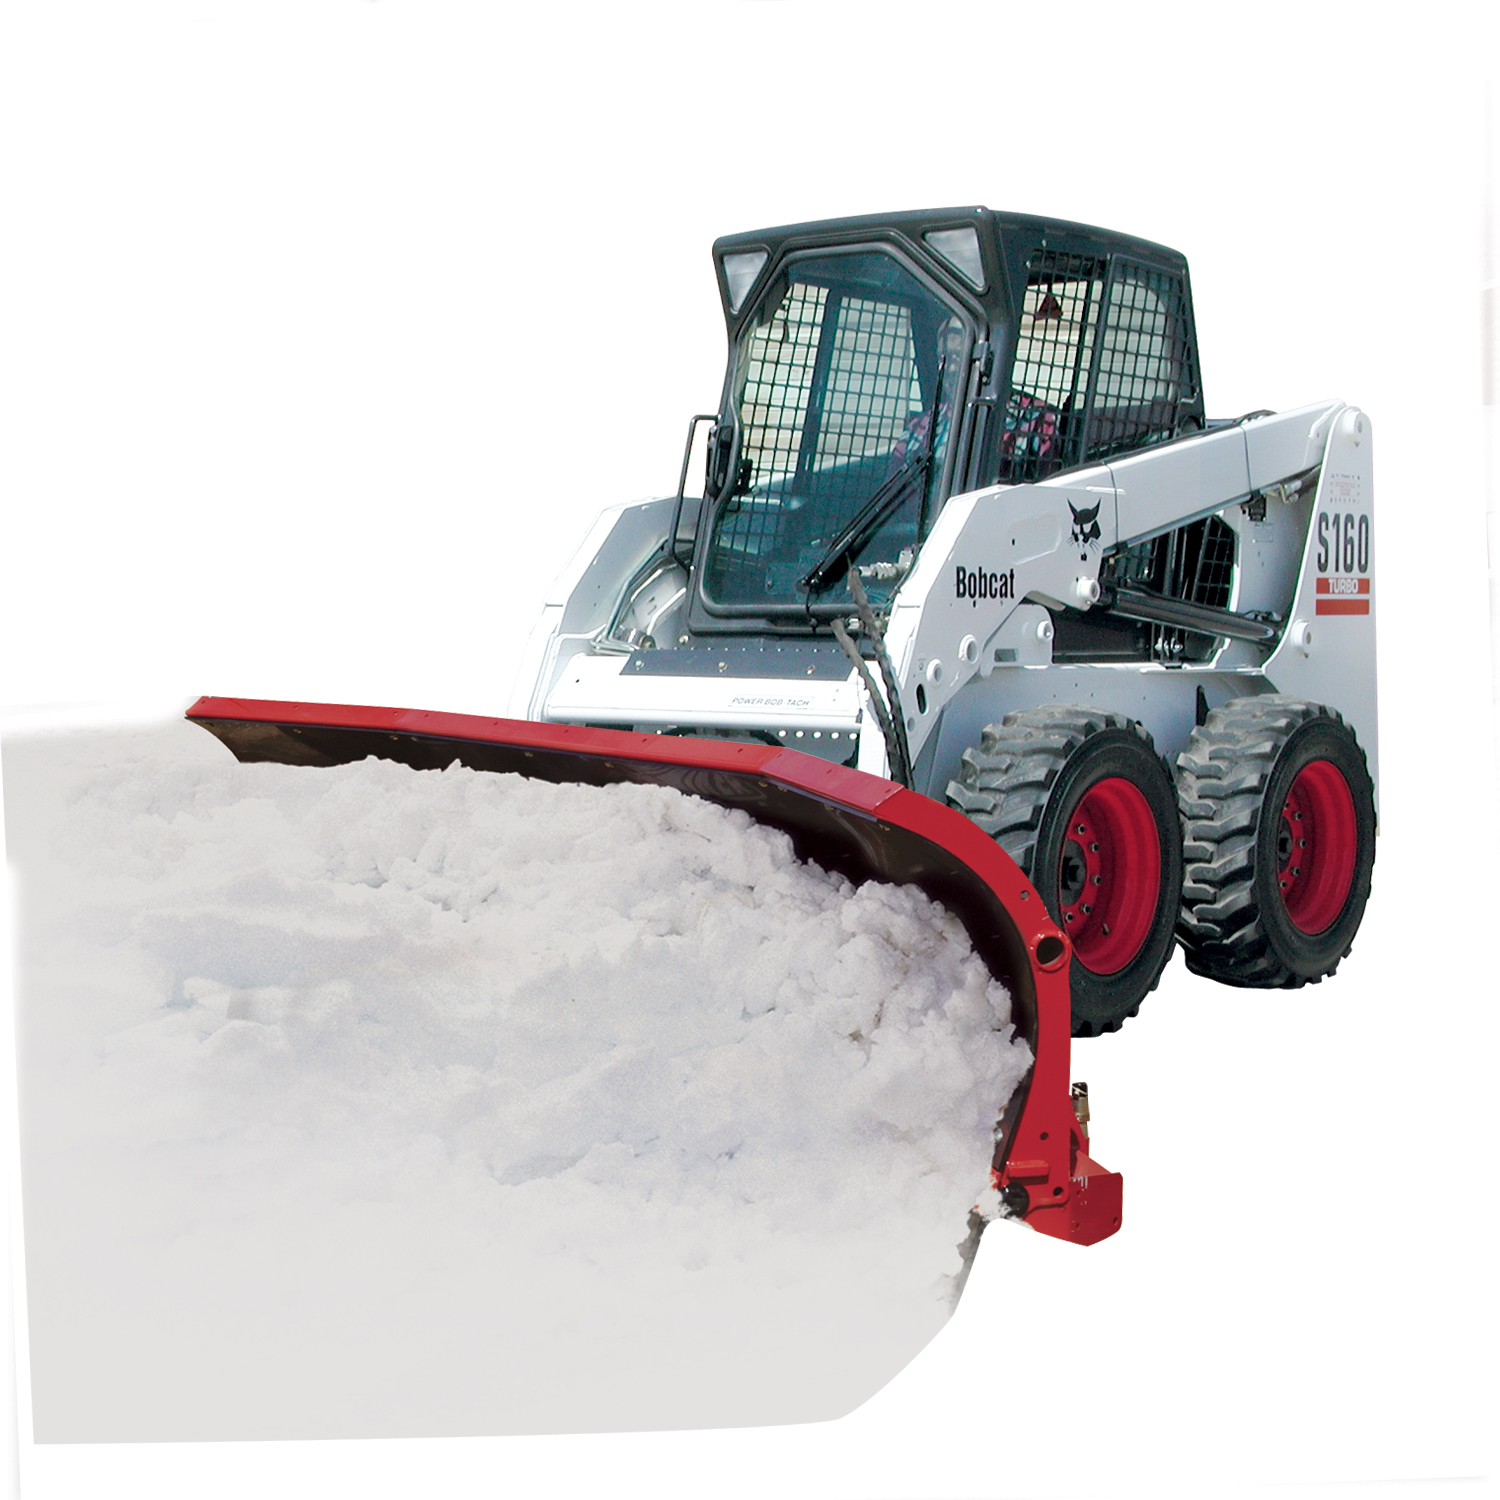 New Hiniker 9 Trip Edge with crossover relief valve Poly Snowplow, Model:2692, Skid Steer